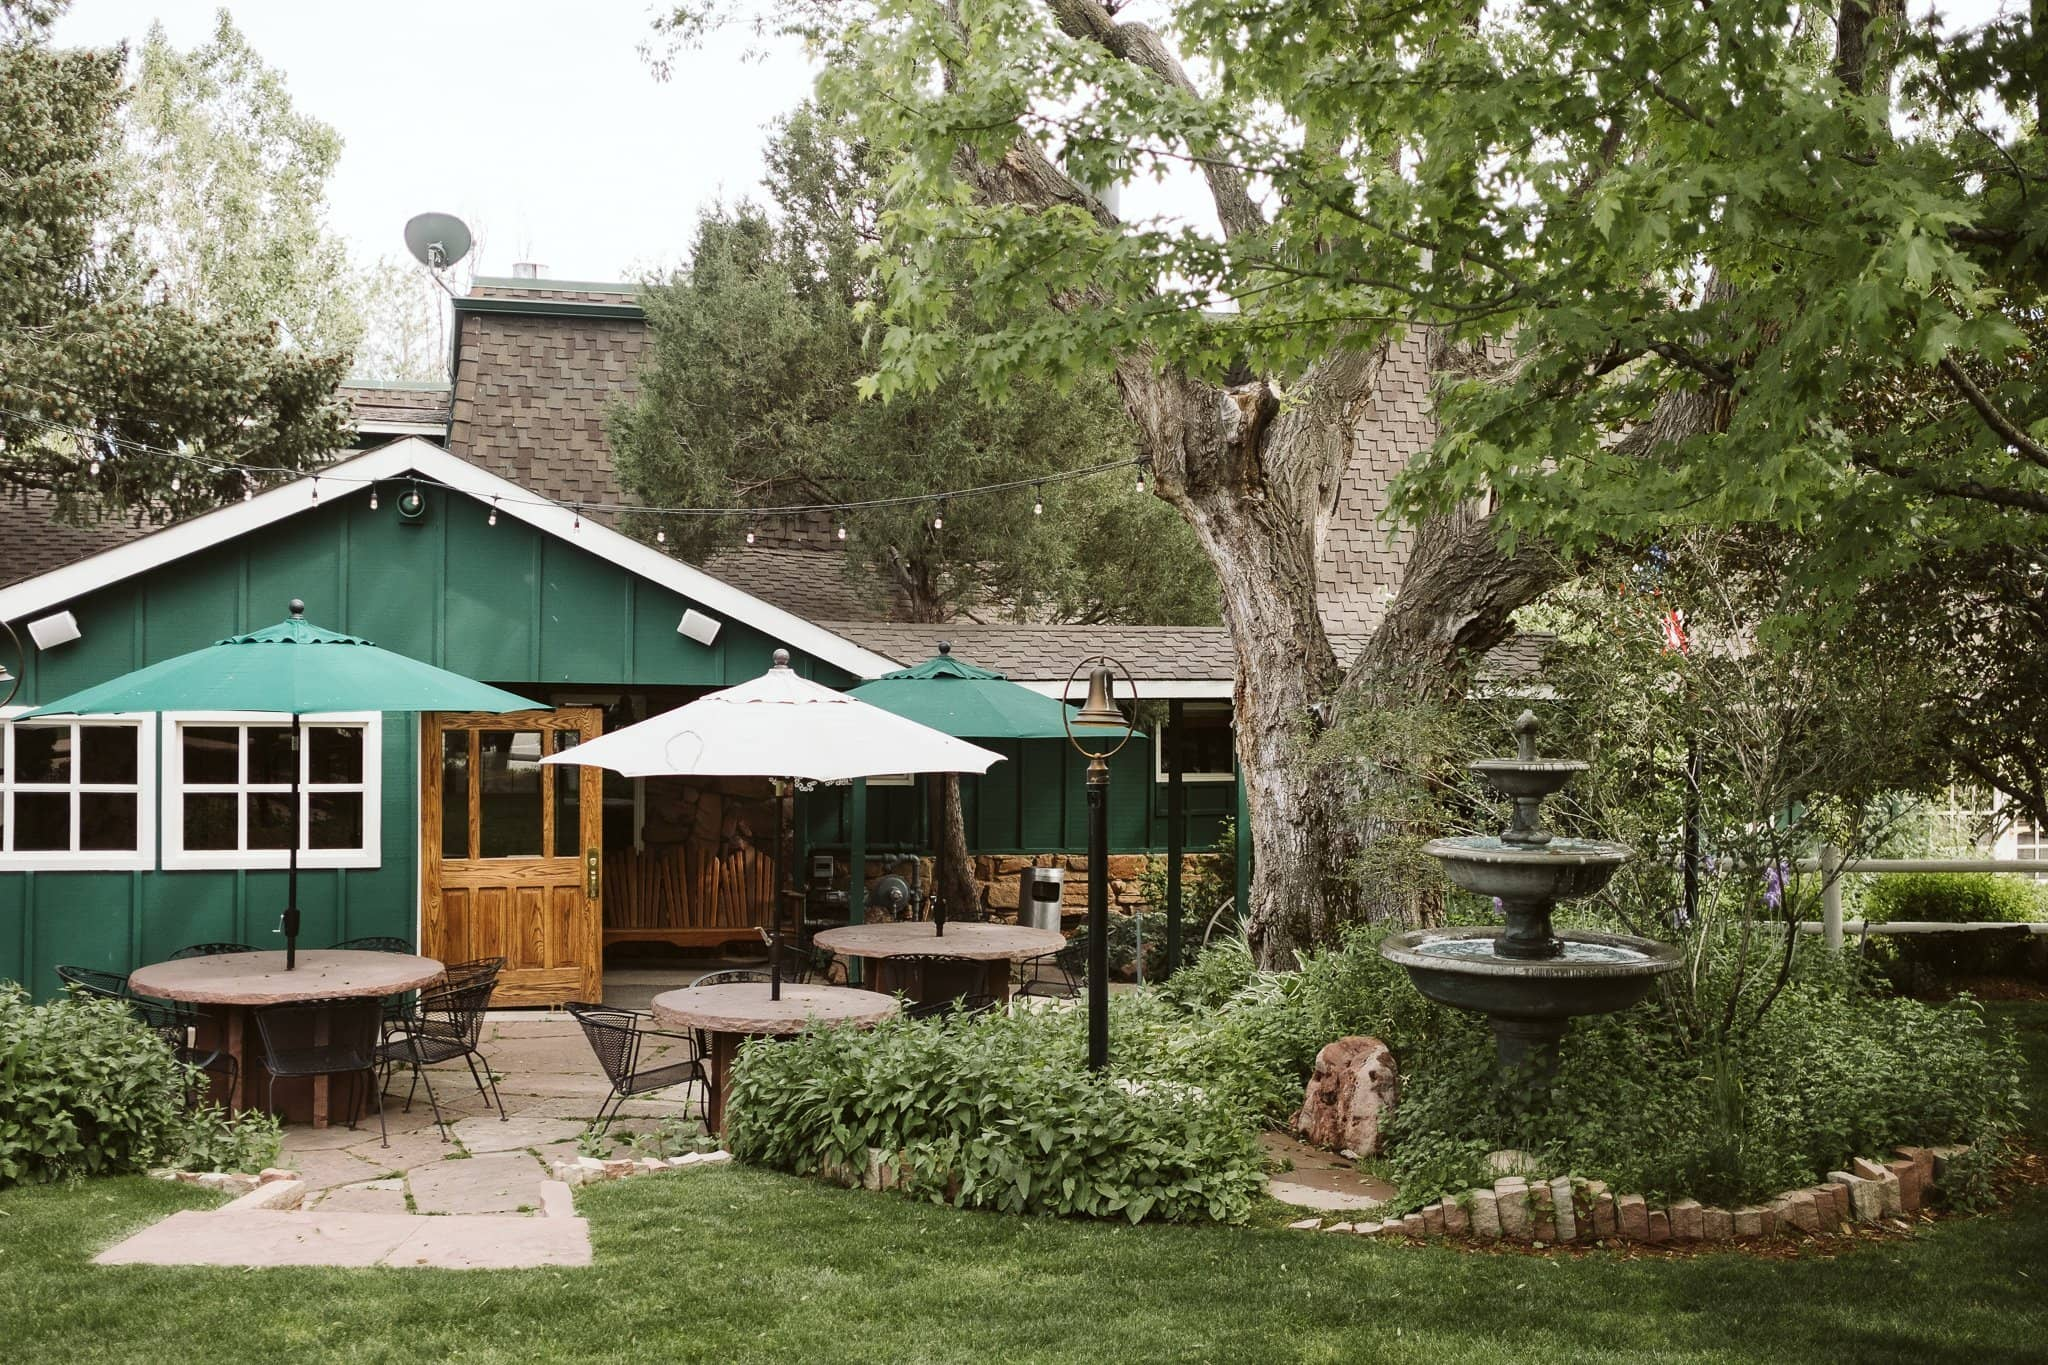 greenbriar-inn-boulder-wedding-venue-7